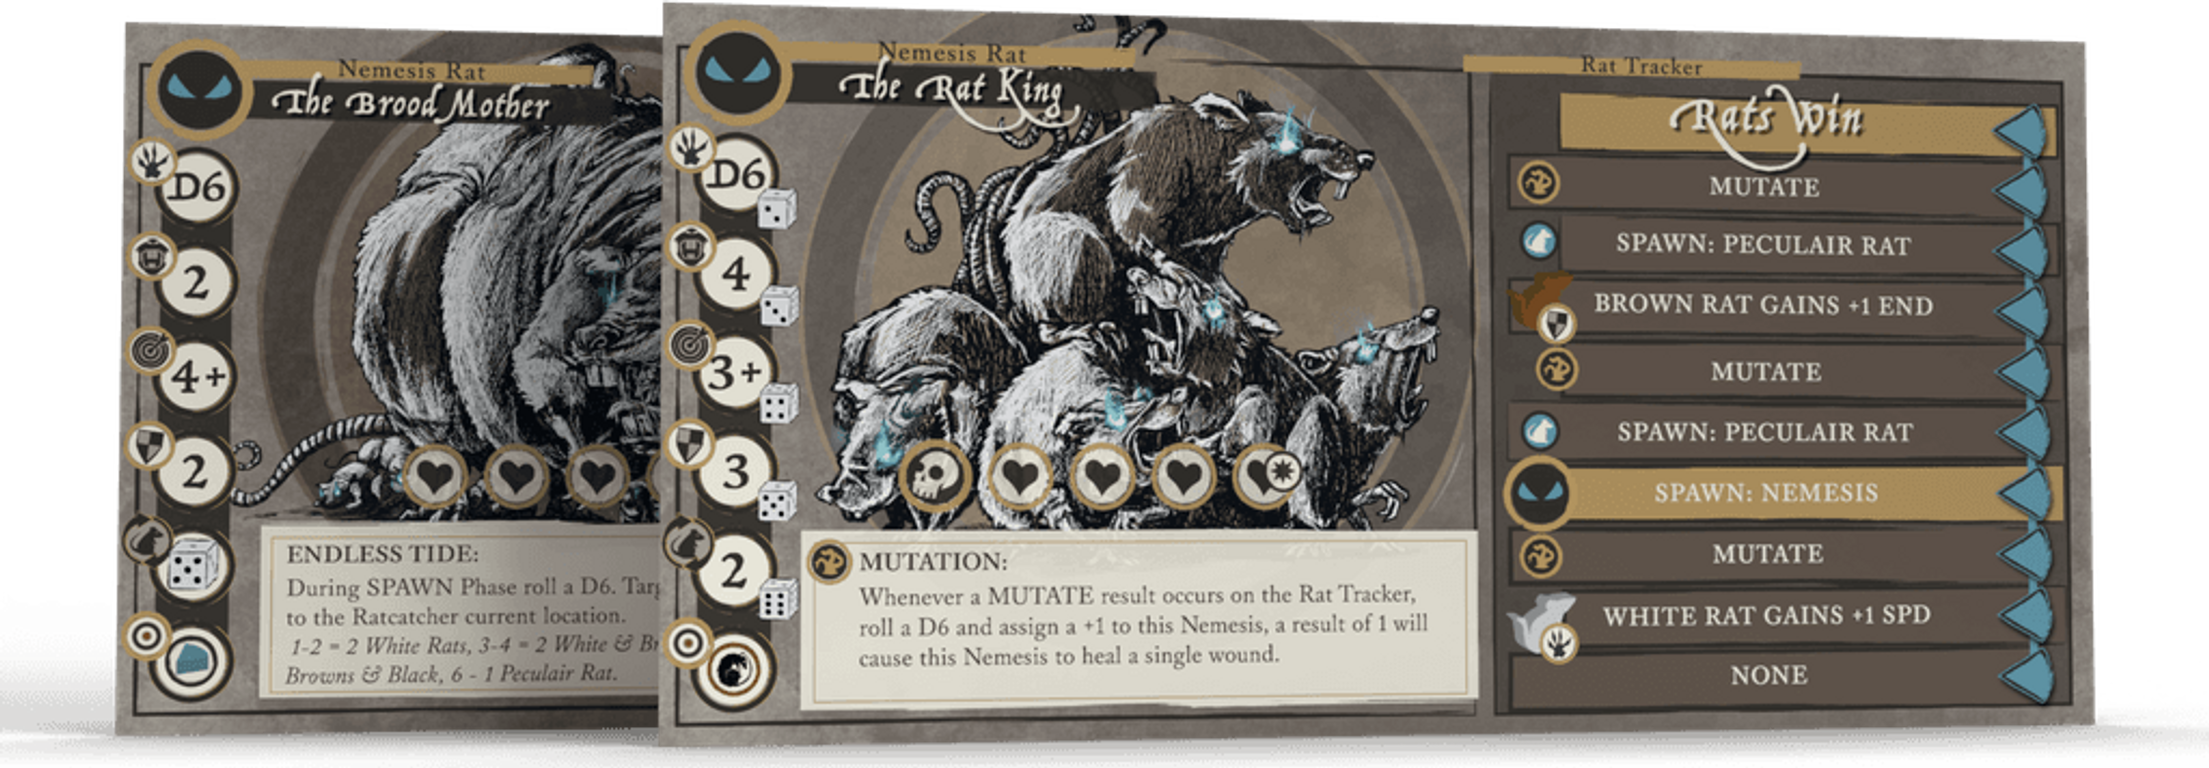 The Ratcatcher: The Solo Adventure Game cards